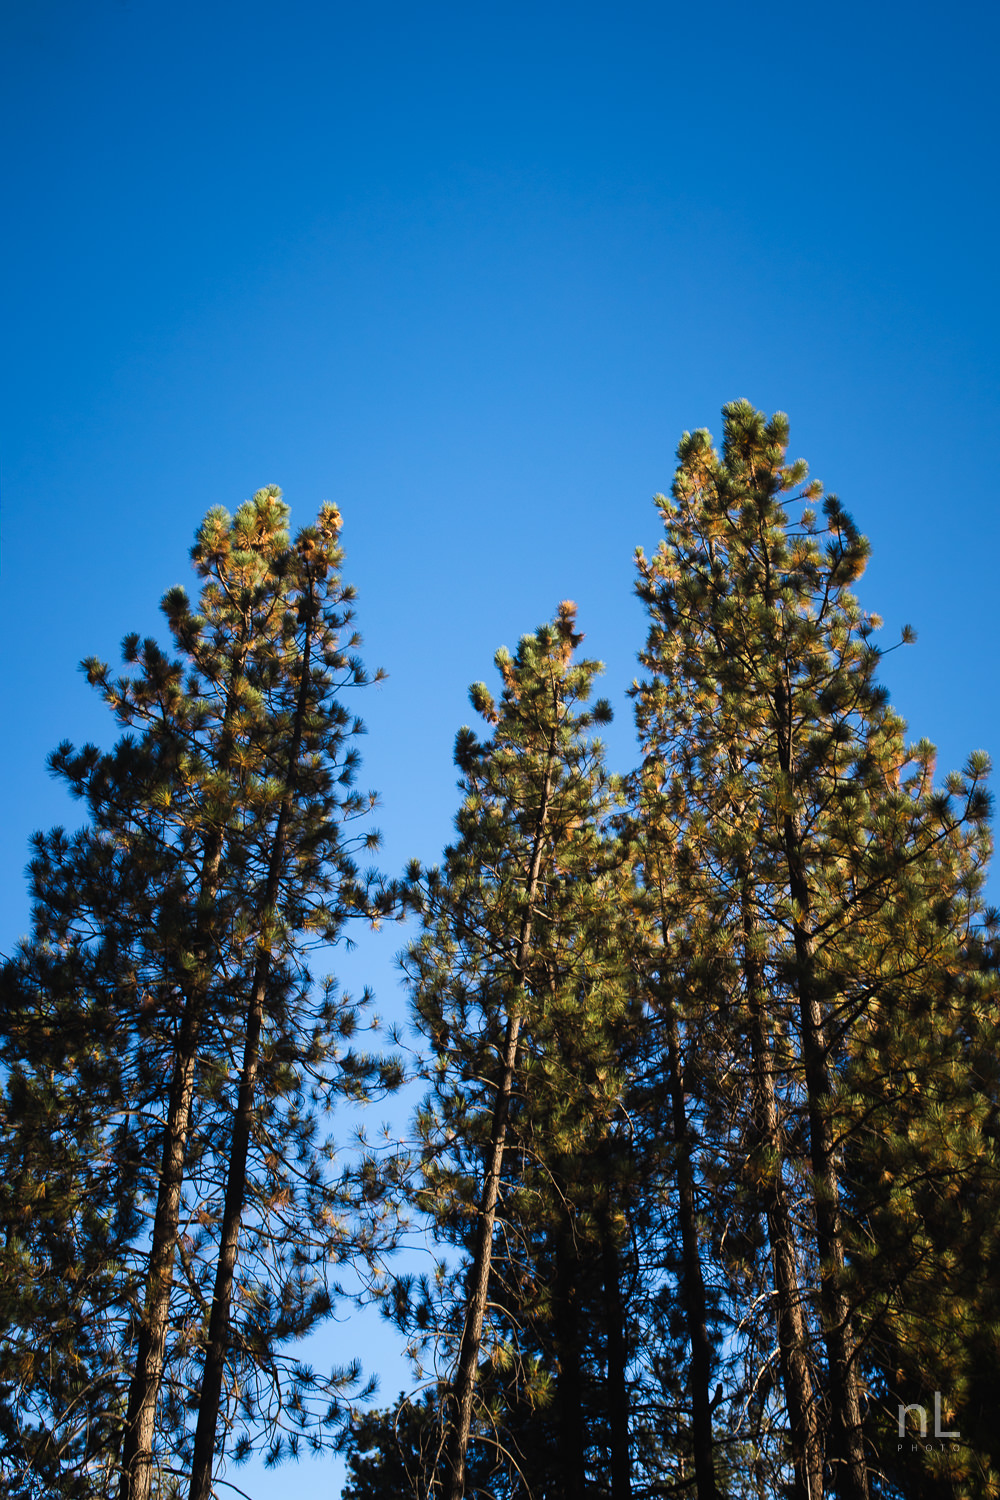 los-angeles-national-forest-engagement-photography-trees-blue-sky